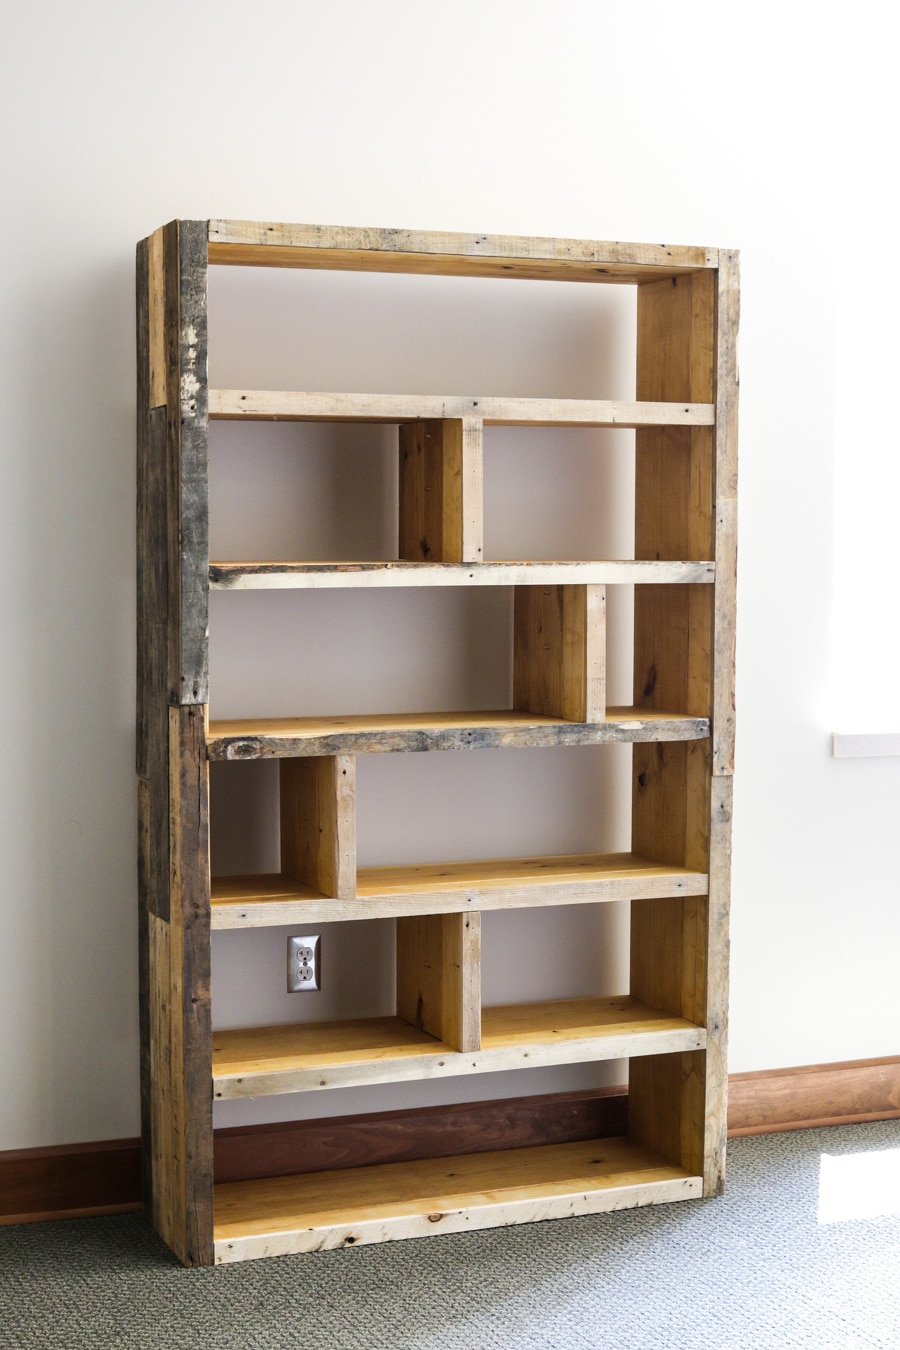 diy rustic pallet bookshelf. Black Bedroom Furniture Sets. Home Design Ideas